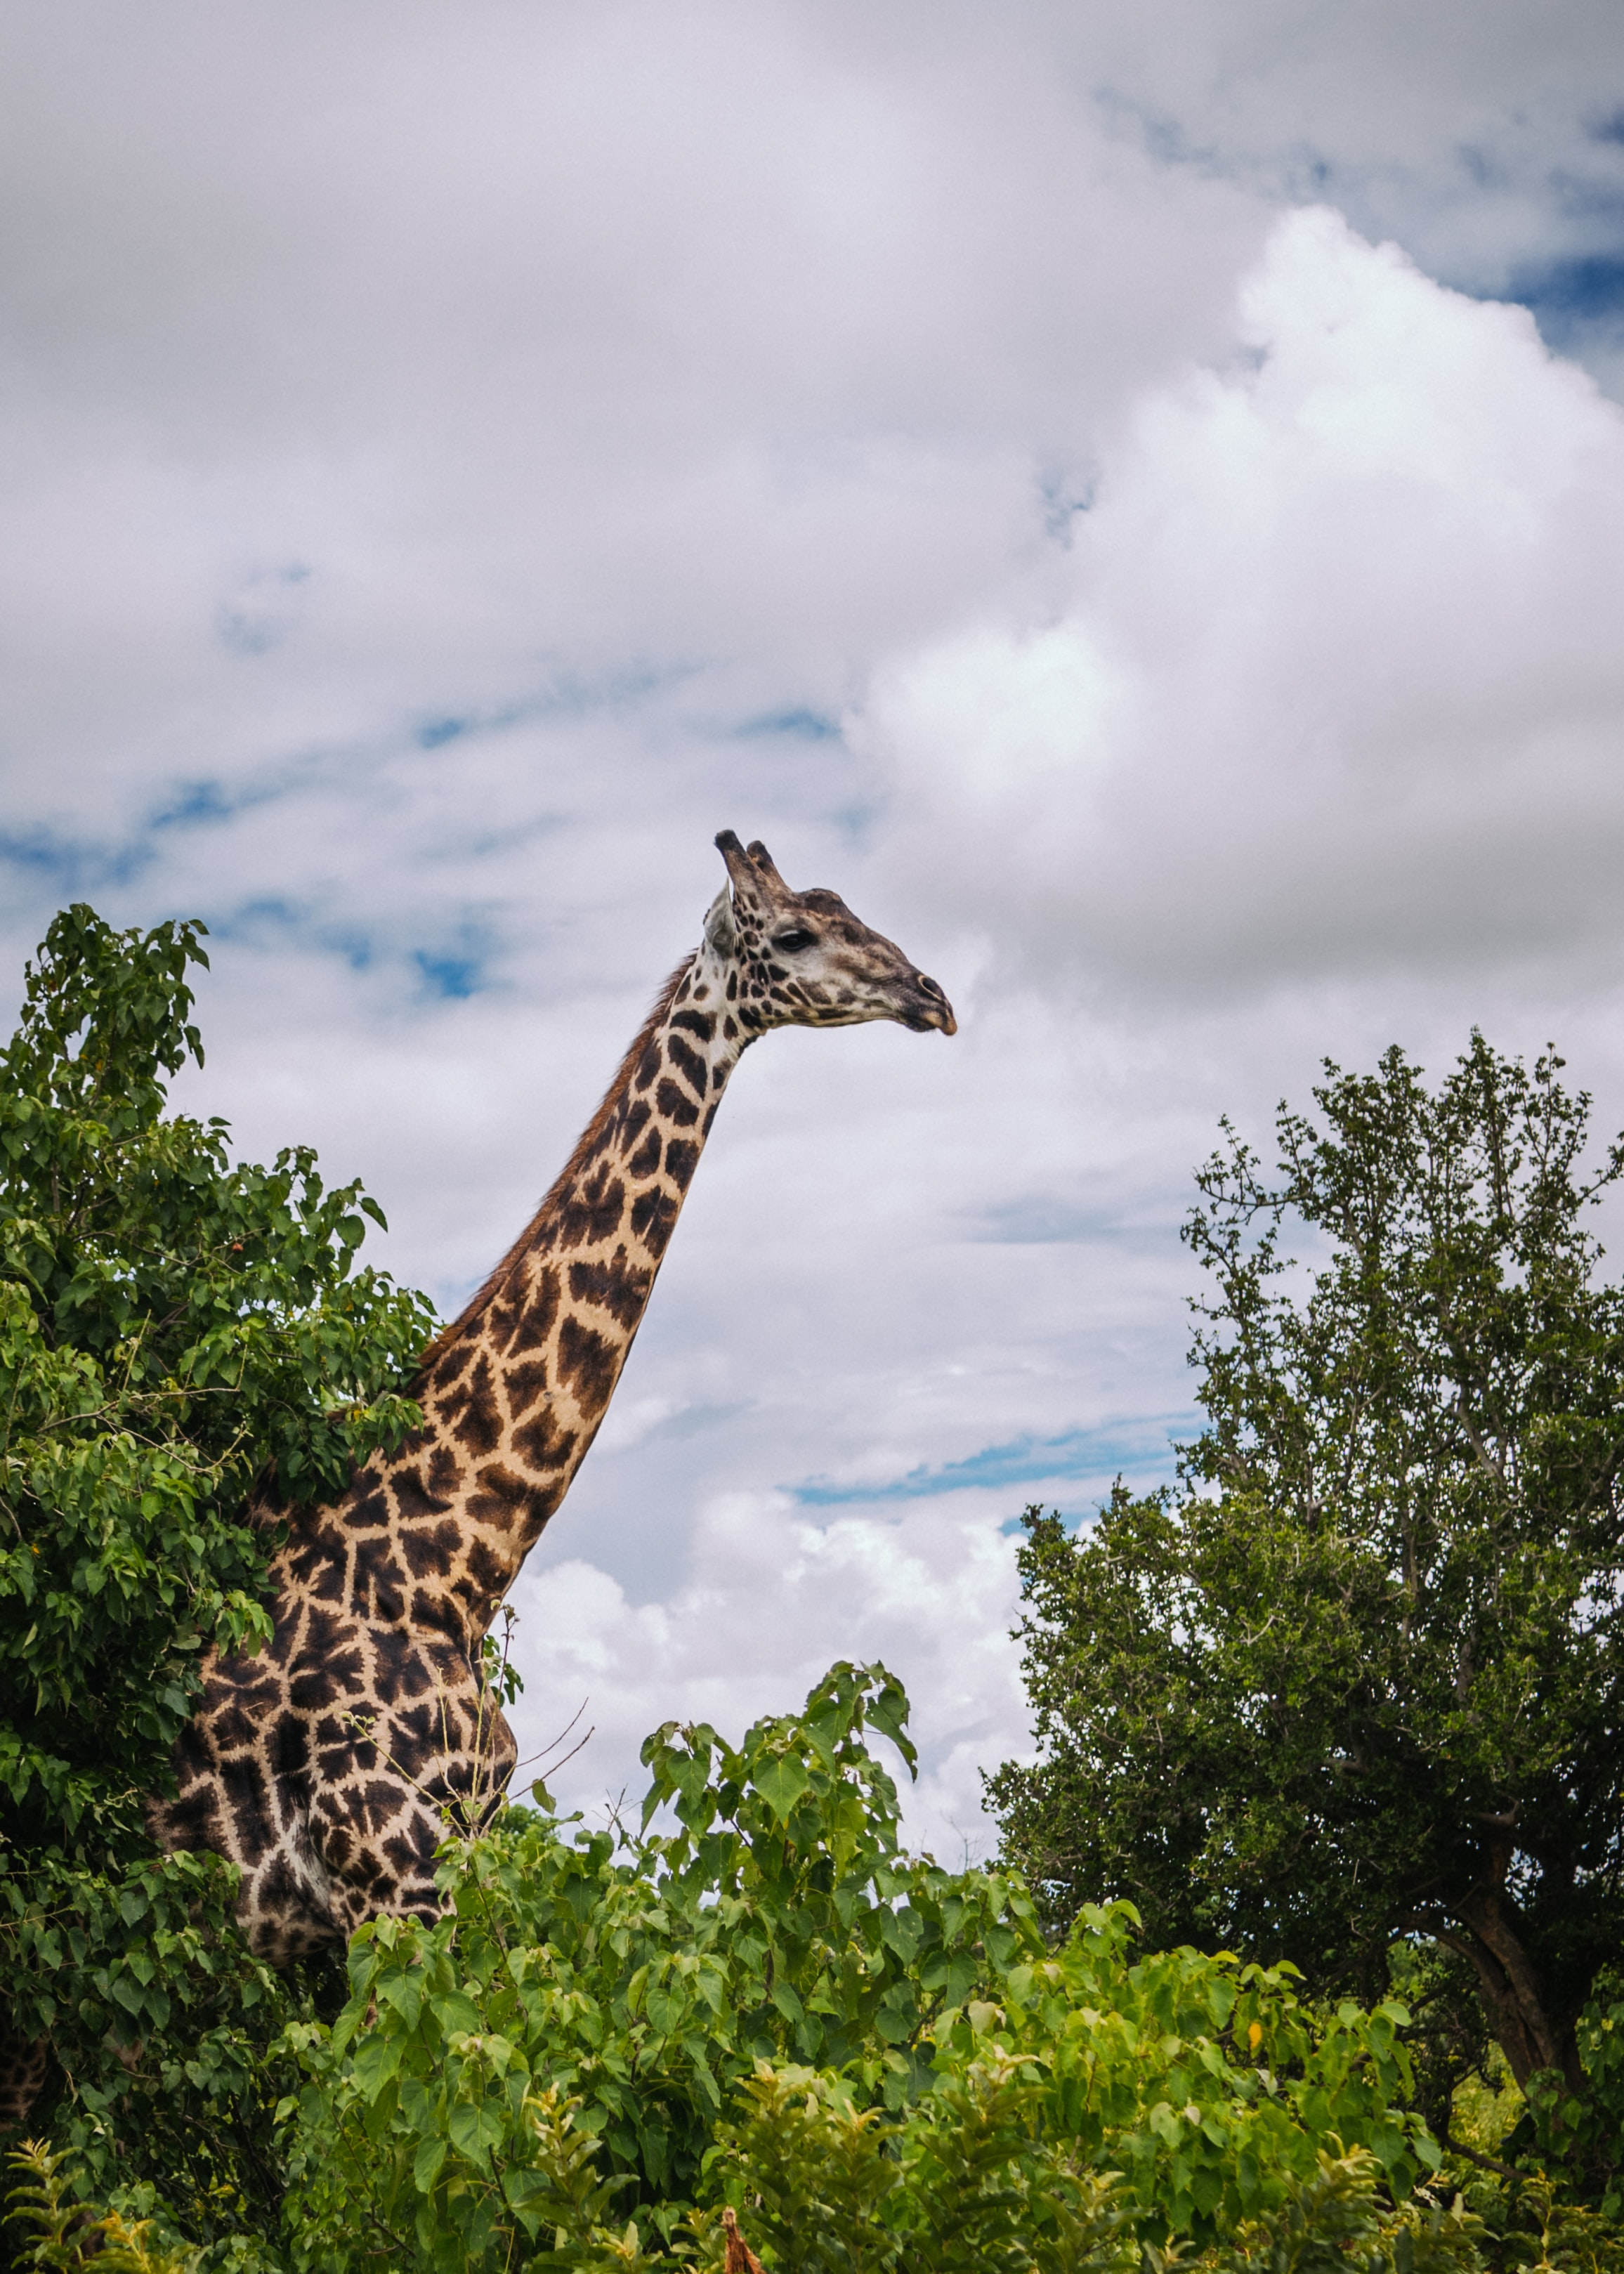 giraffe surround with trees